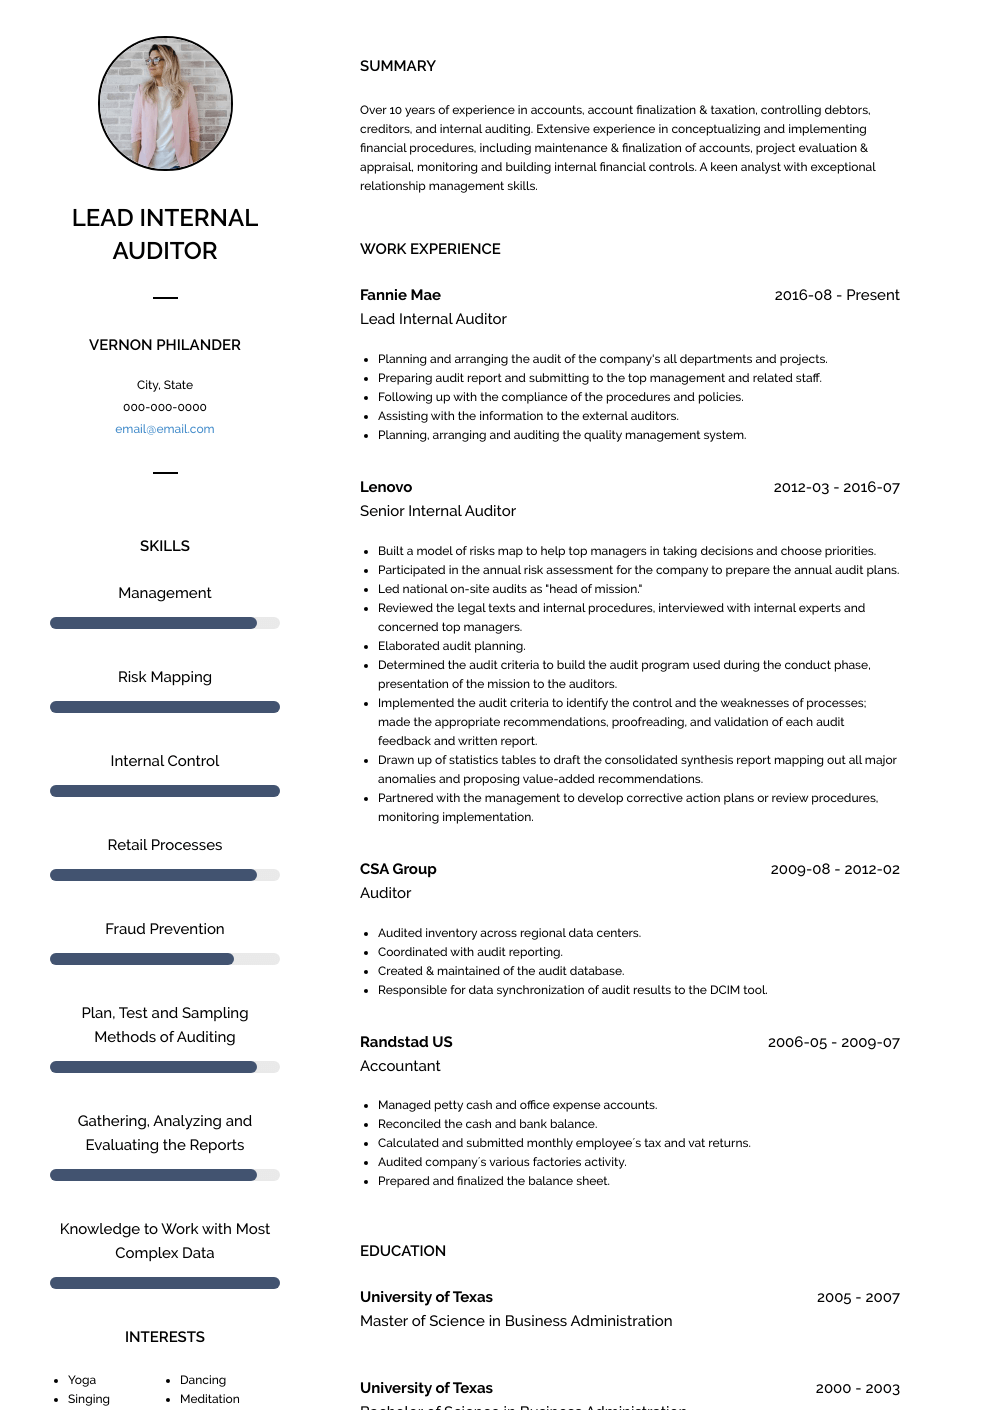 Lead Internal Auditor Resume Sample and Template